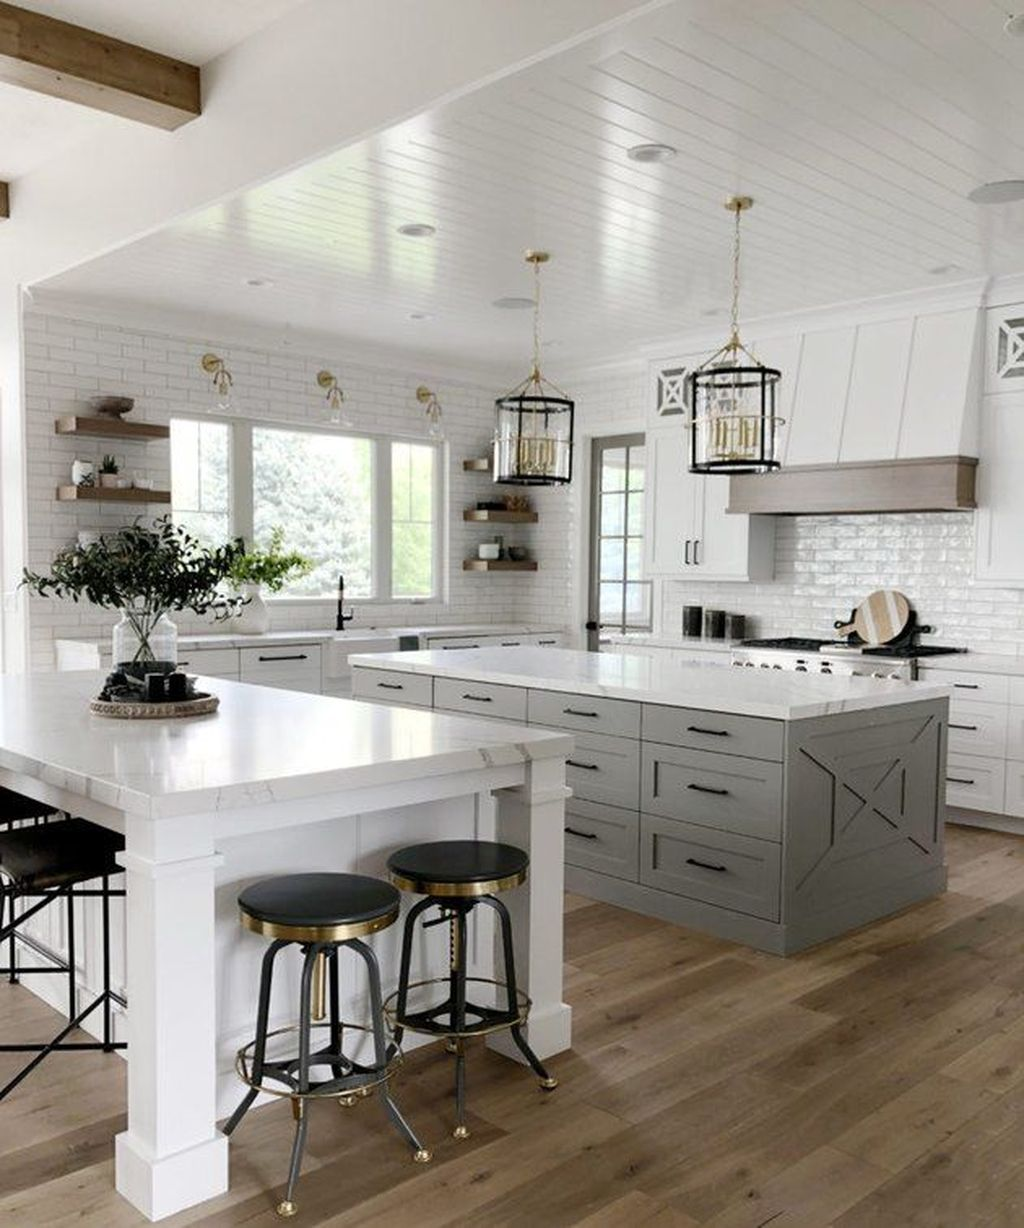 Stunning Farmhouse Kitchen Island Design Ideas 01